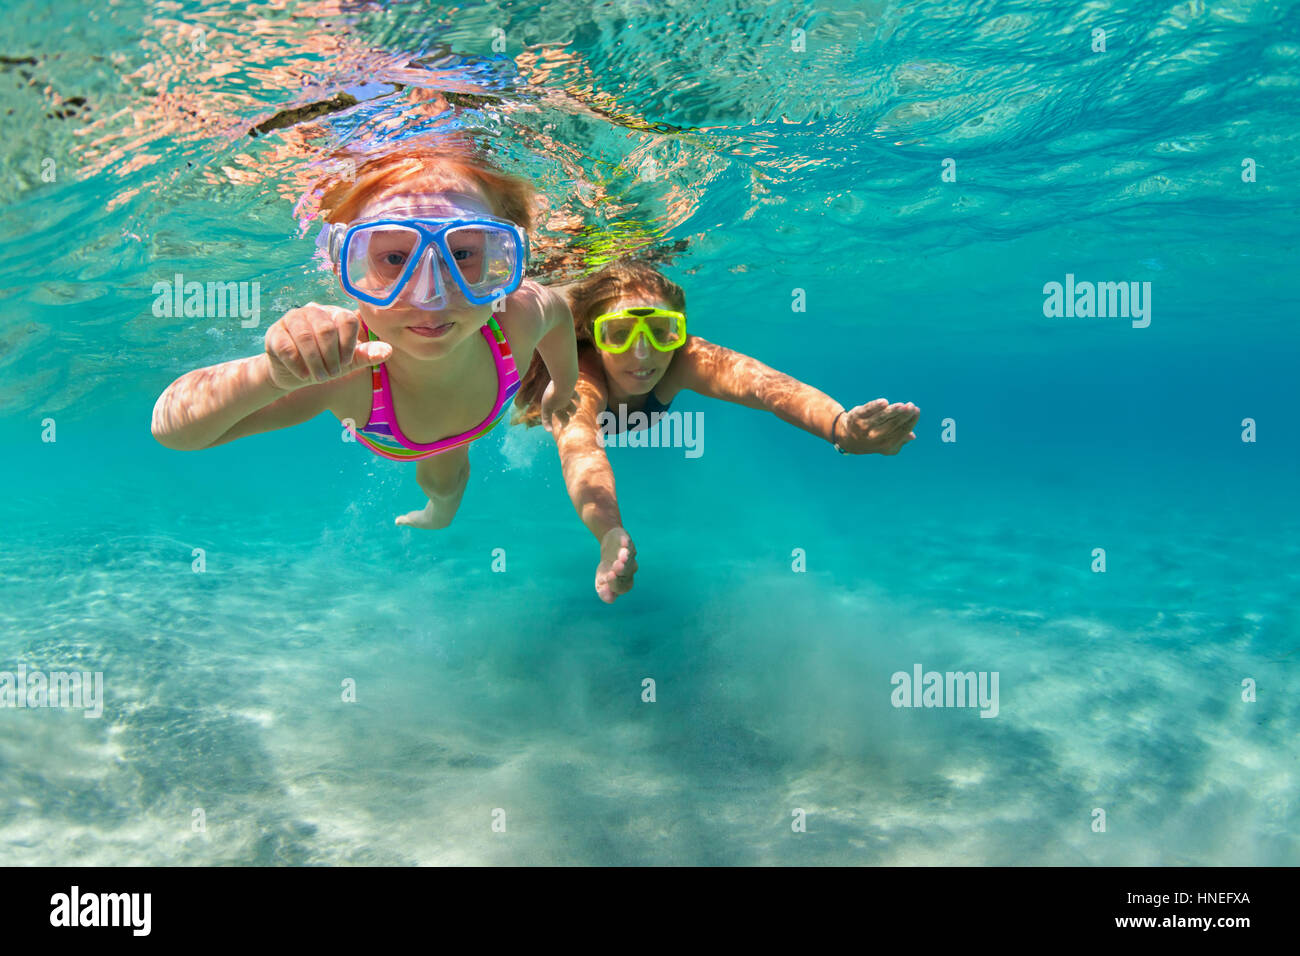 Happy family - mother with baby girl dive, swim underwater with fun in sea pool. Lifestyle, active parent, people - Stock Image